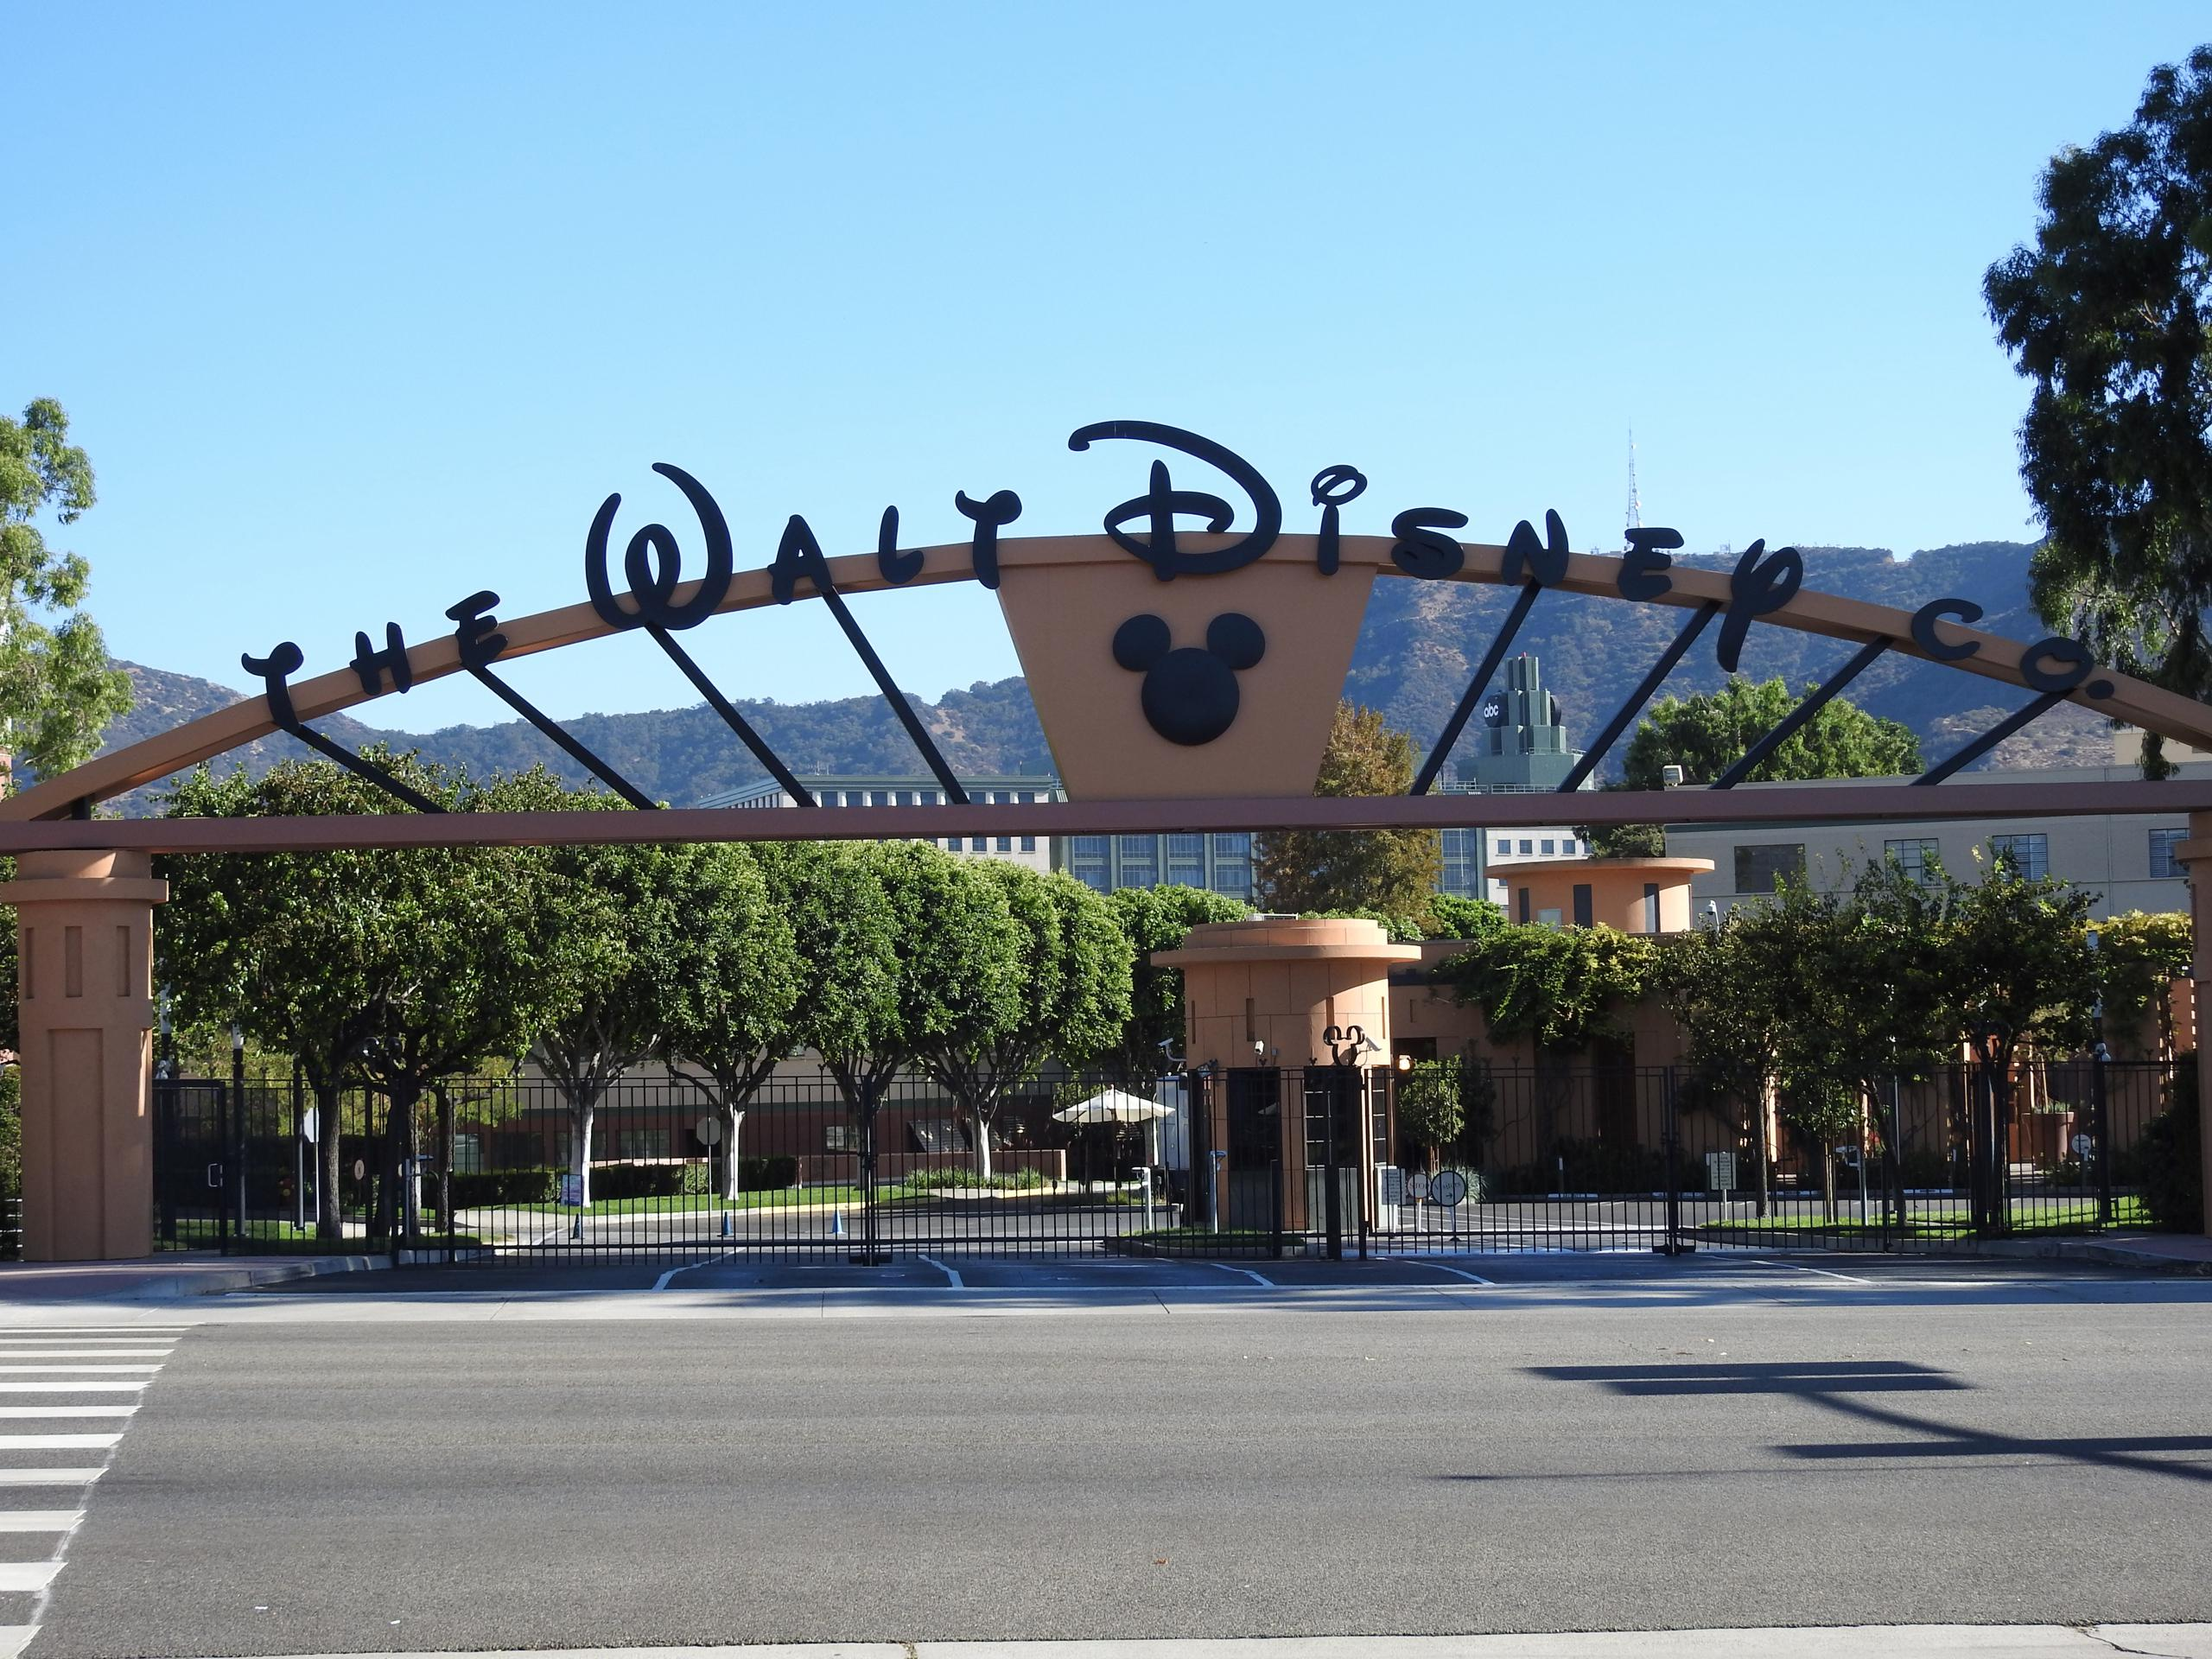 The Walt Disney Company's headquarters in Burbank, California.